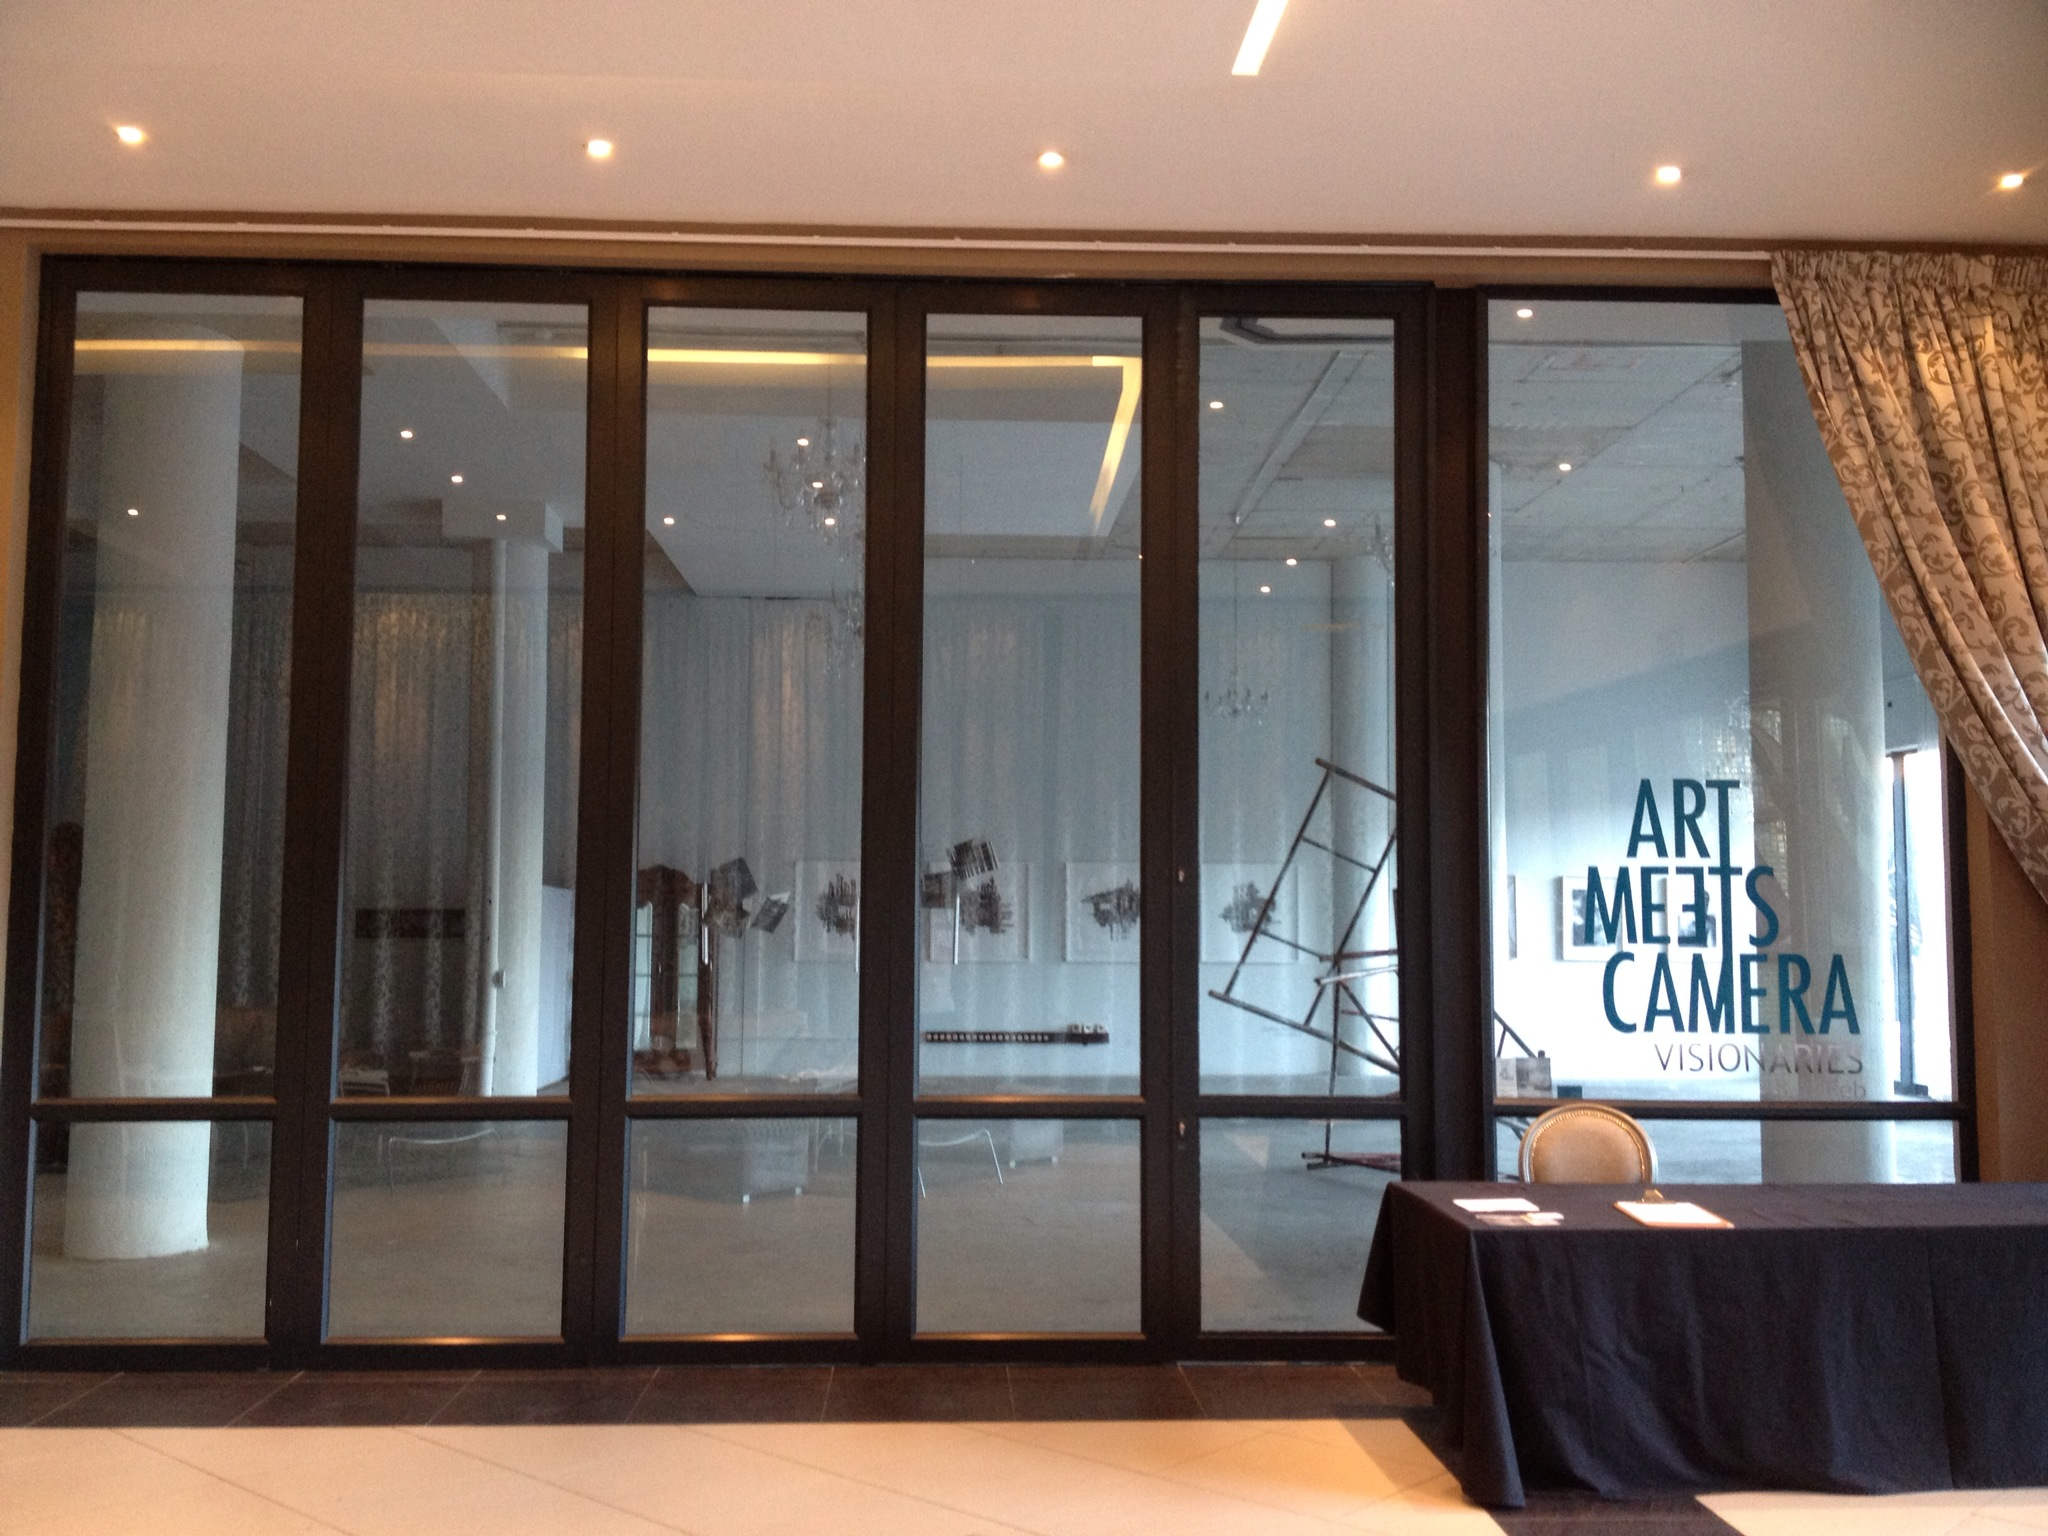 Art Meets Camera Exhibition entrance